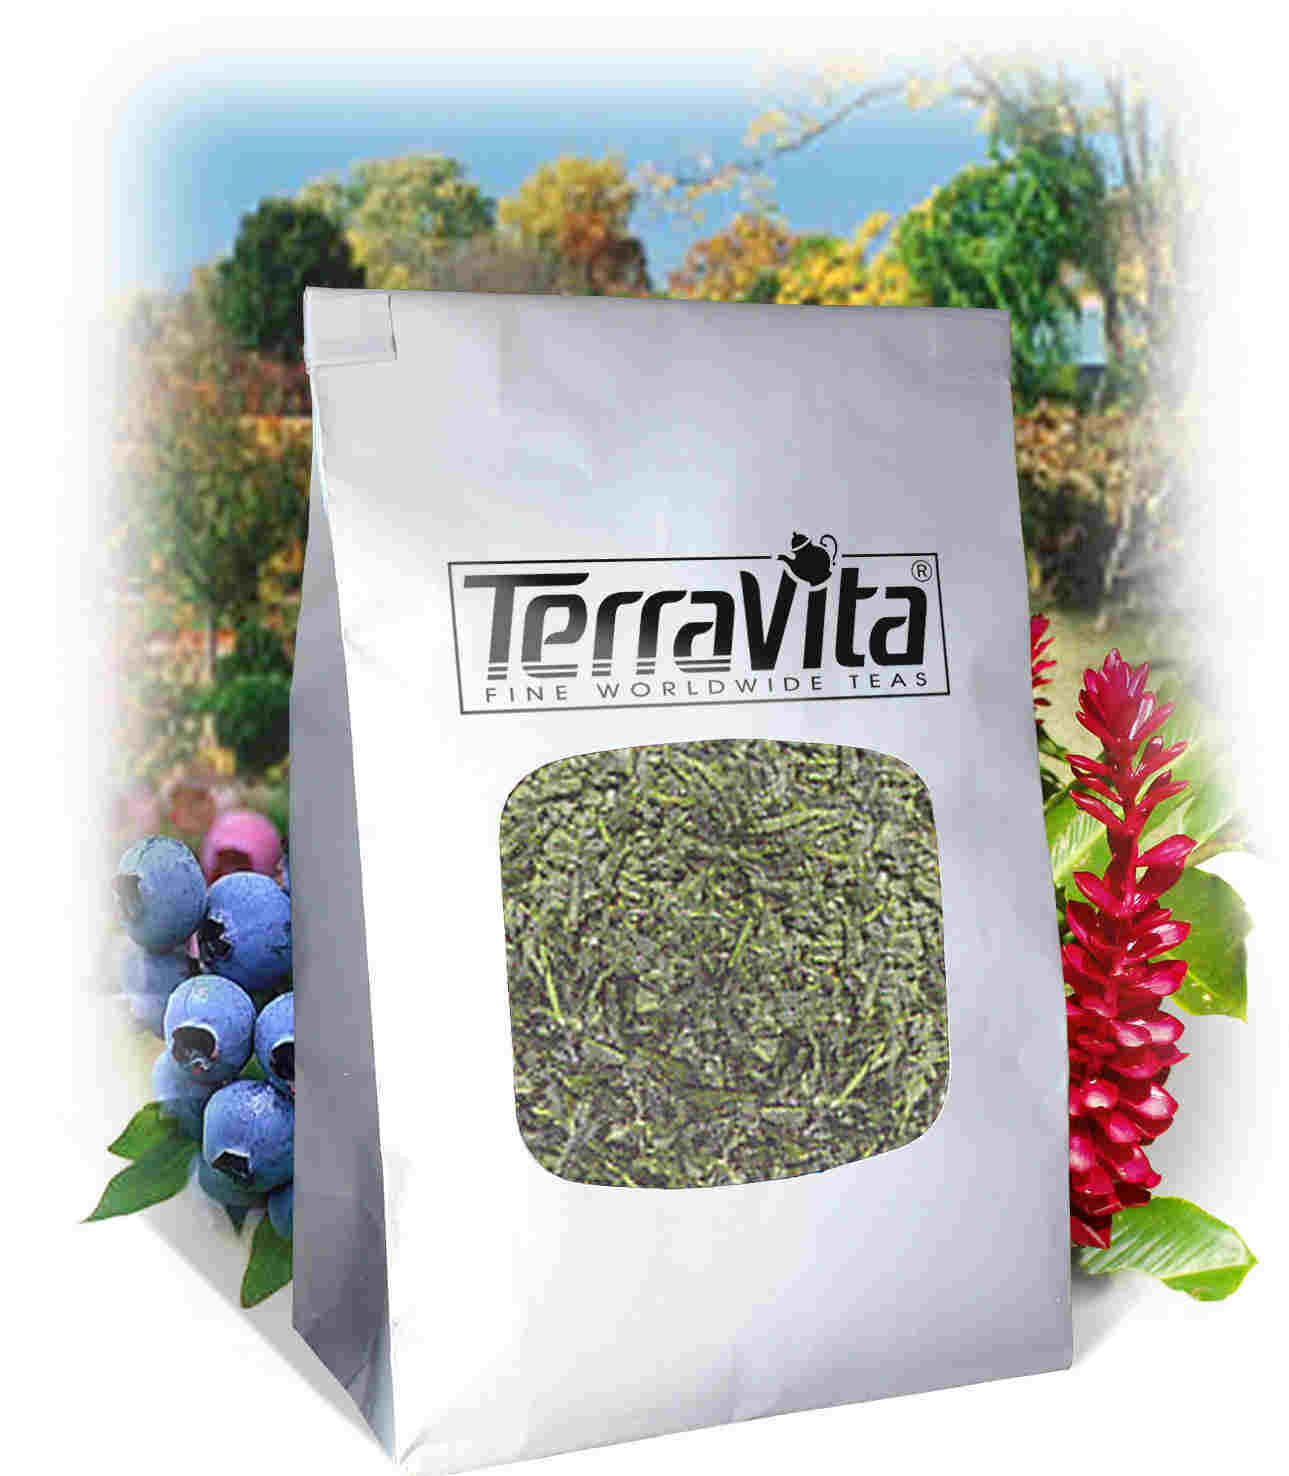 Circulatory Support Tea (Loose) - Ginkgo and Hawthorn